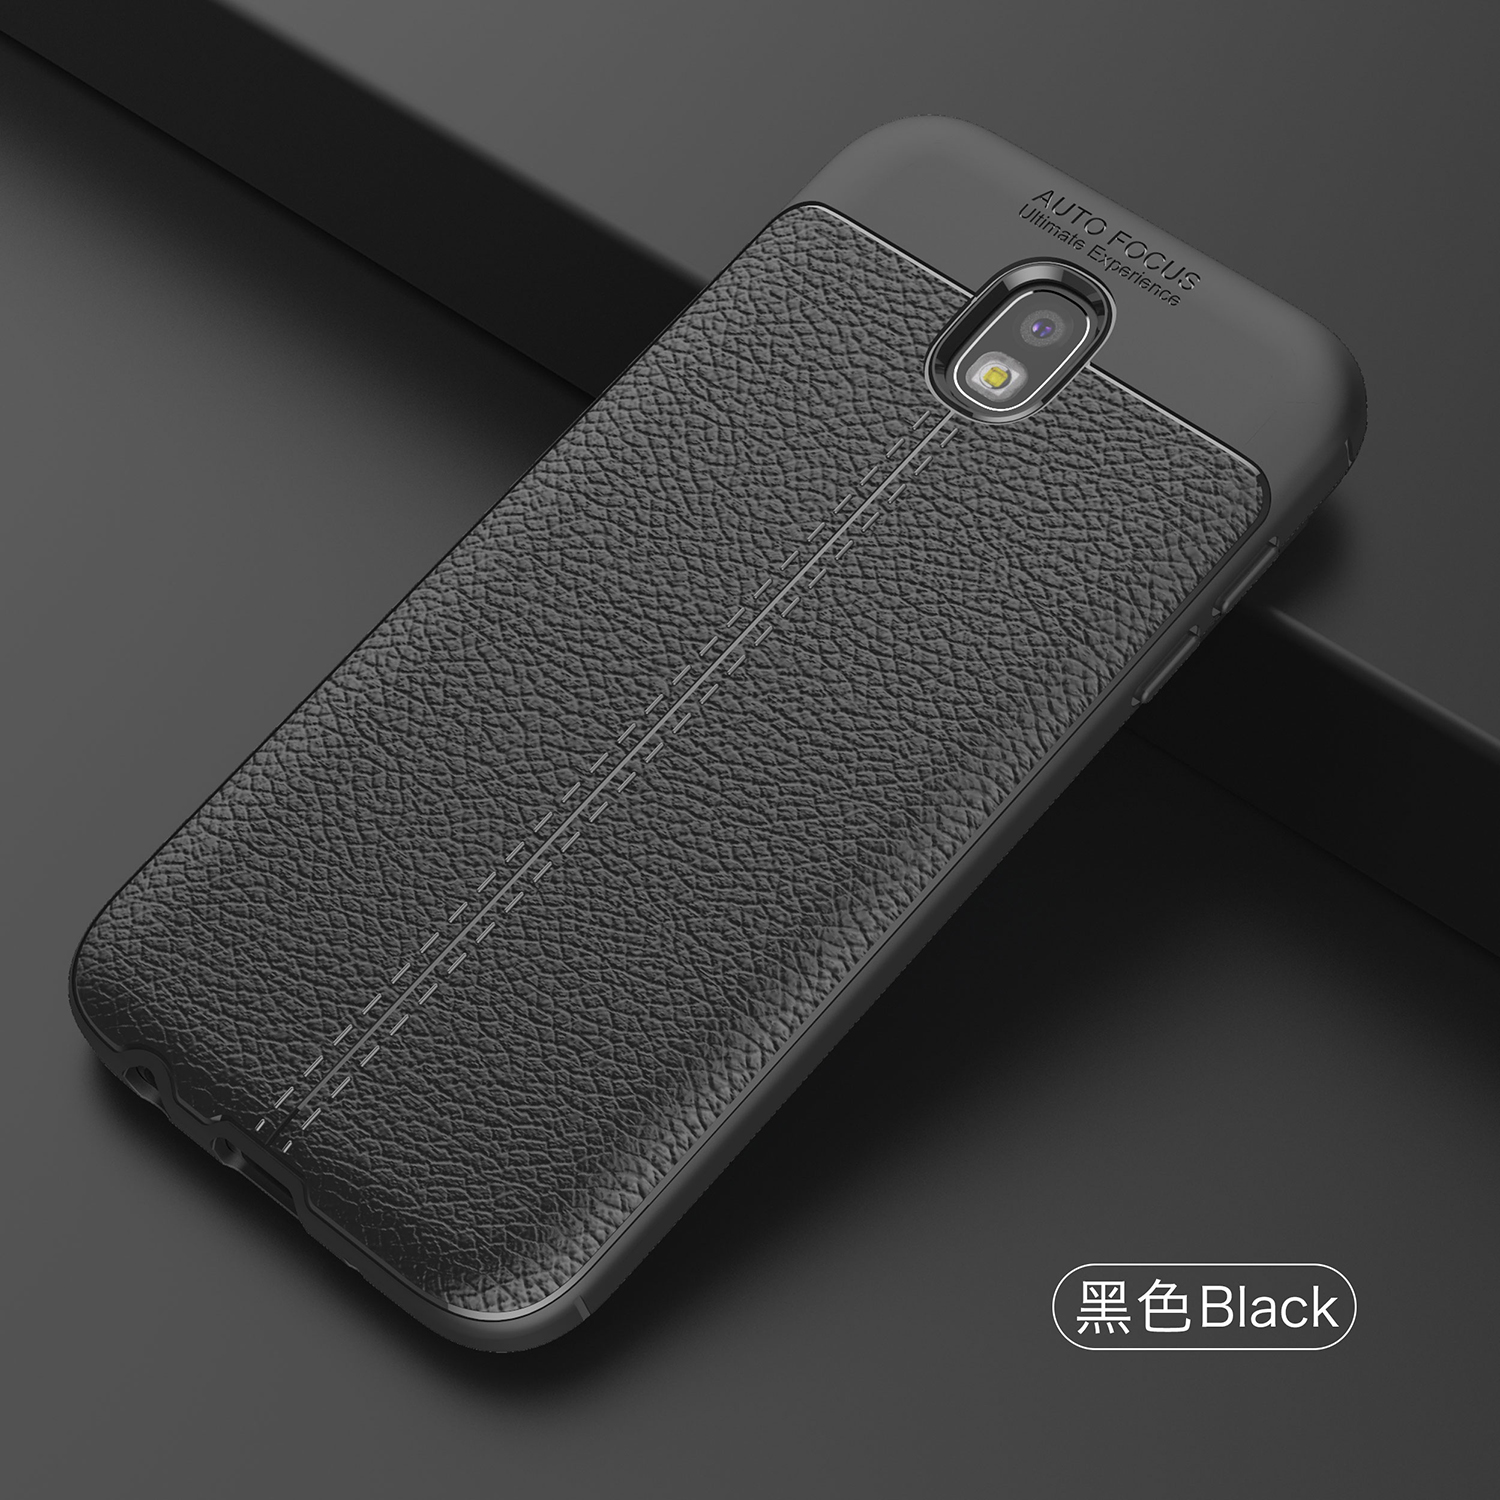 sale retailer 2a099 2ff6f Samsung J5 Pro Ultra Thin Luxury PU Leather Soft Shockproof Case Cover